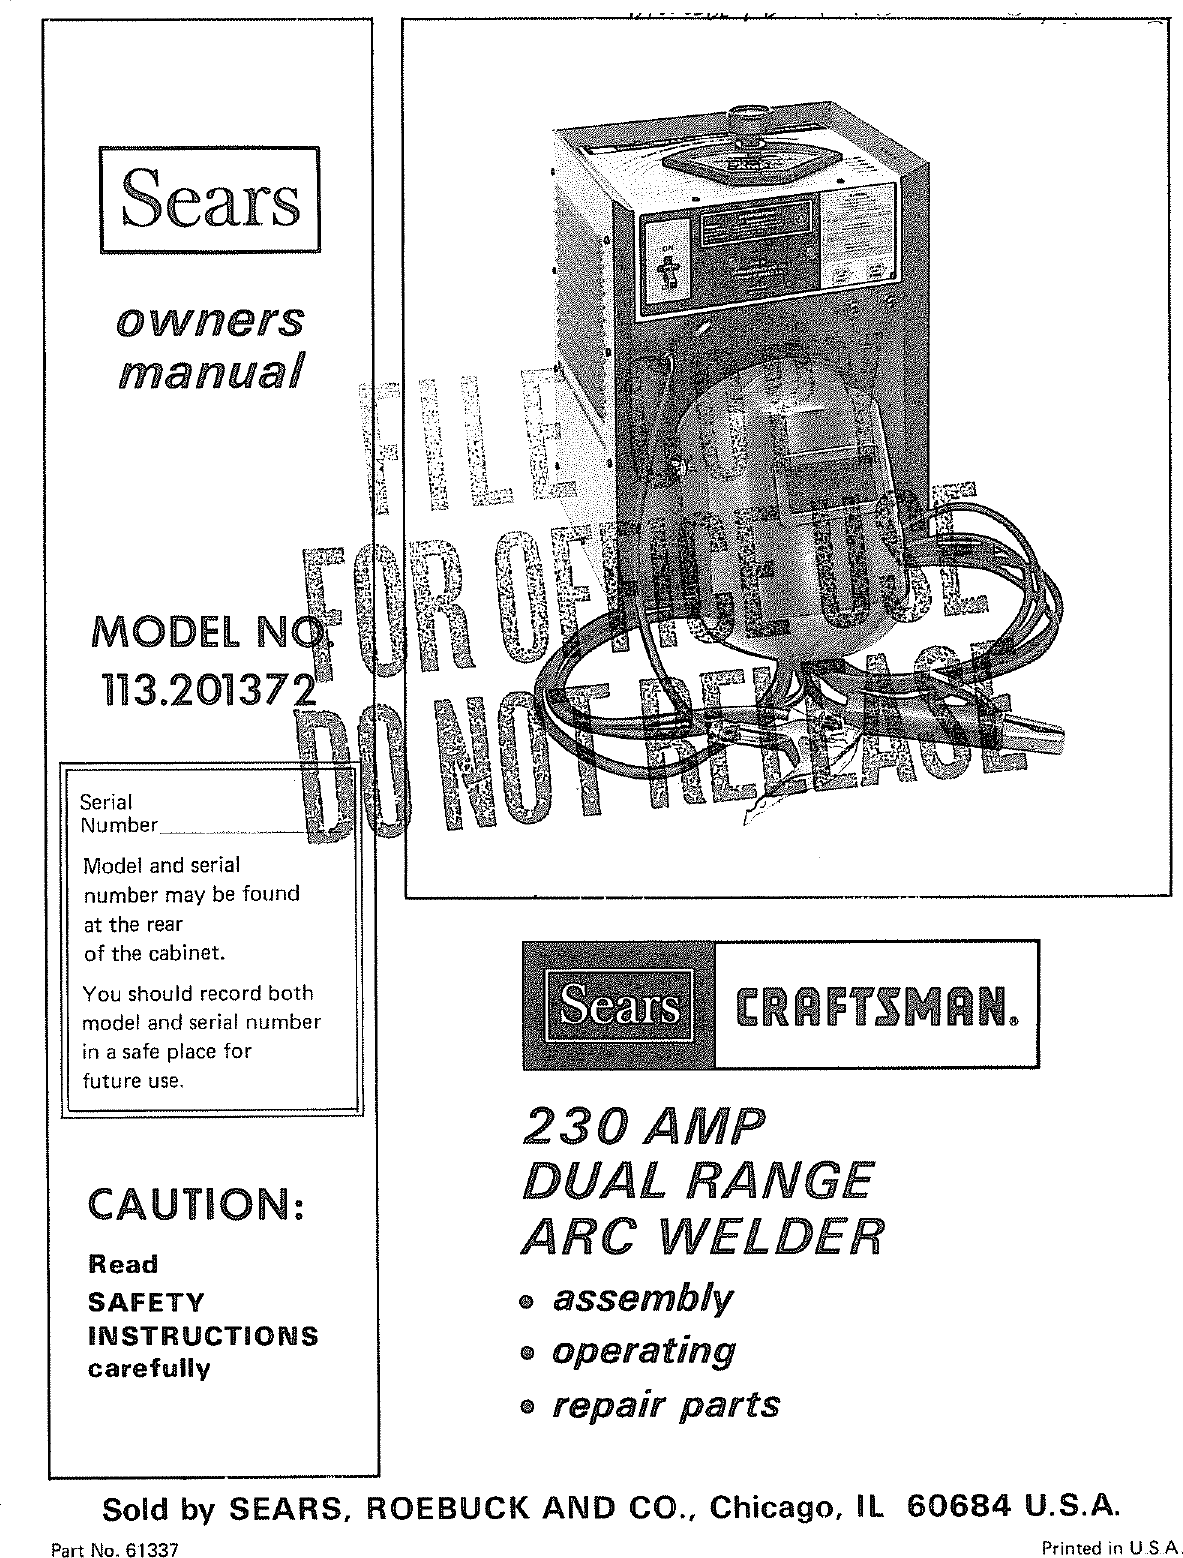 Craftsman 113201372 User Manual 230 AMP WELDER Manuals And